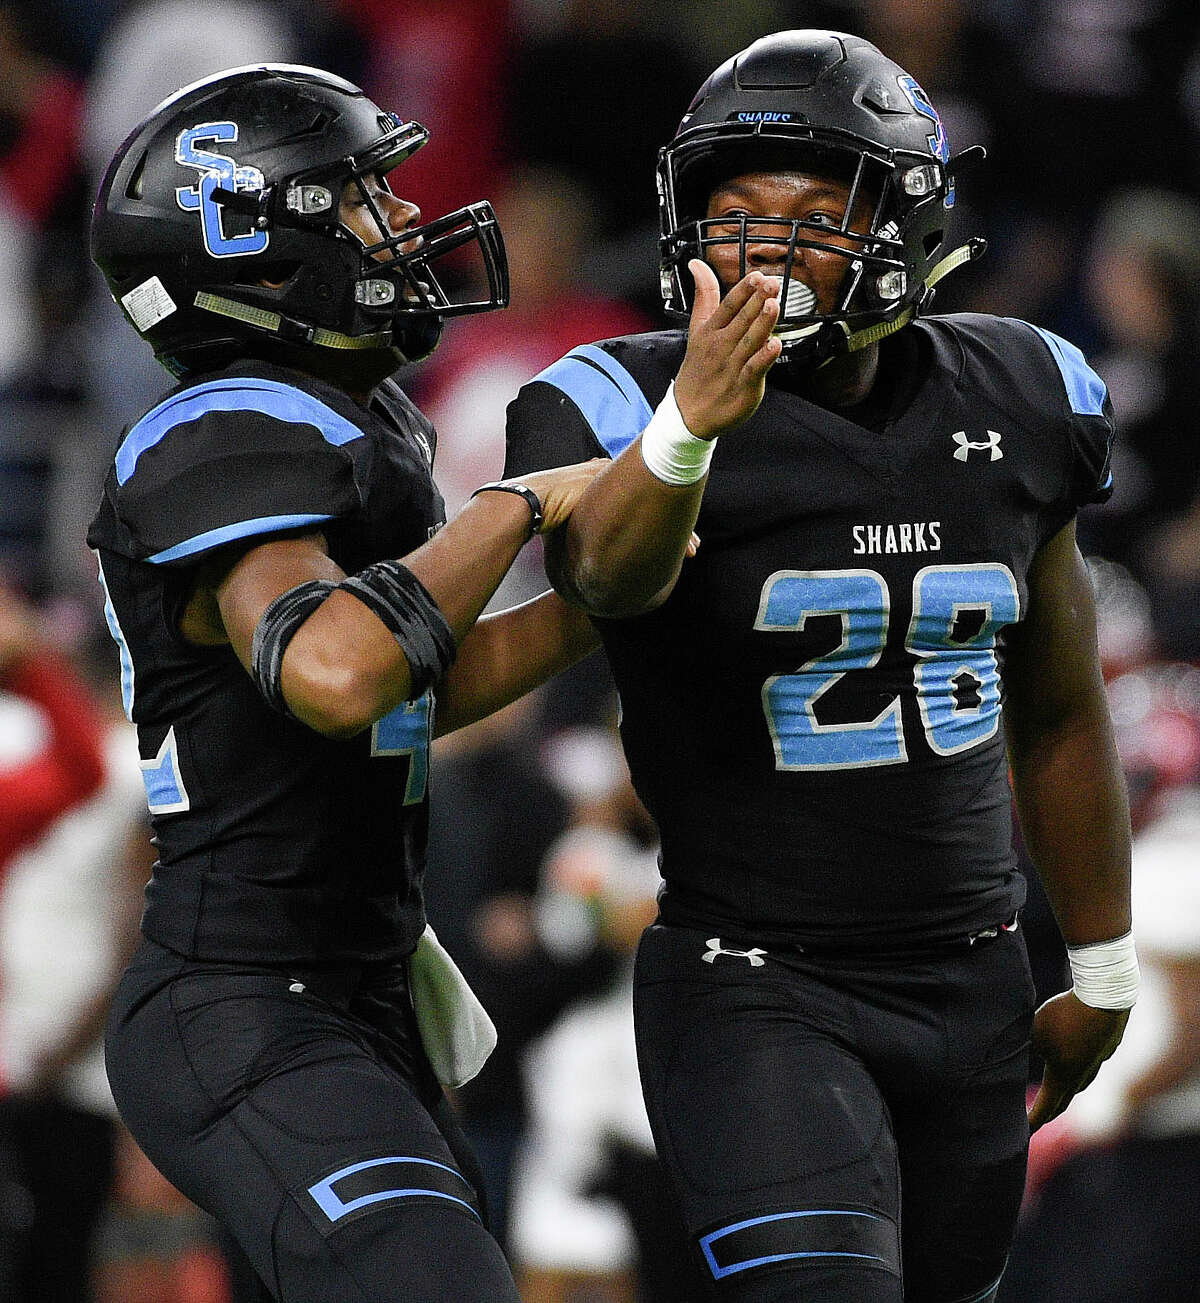 Shadow Creek Jayveon Bell, right, celebrates his fumble recovery with linebacker Raphael Joiner during the second half of a 5A Division 1 state semi-final high school football playoff game against Wagner, Saturday, Dec. 15, 2018, in Houston.